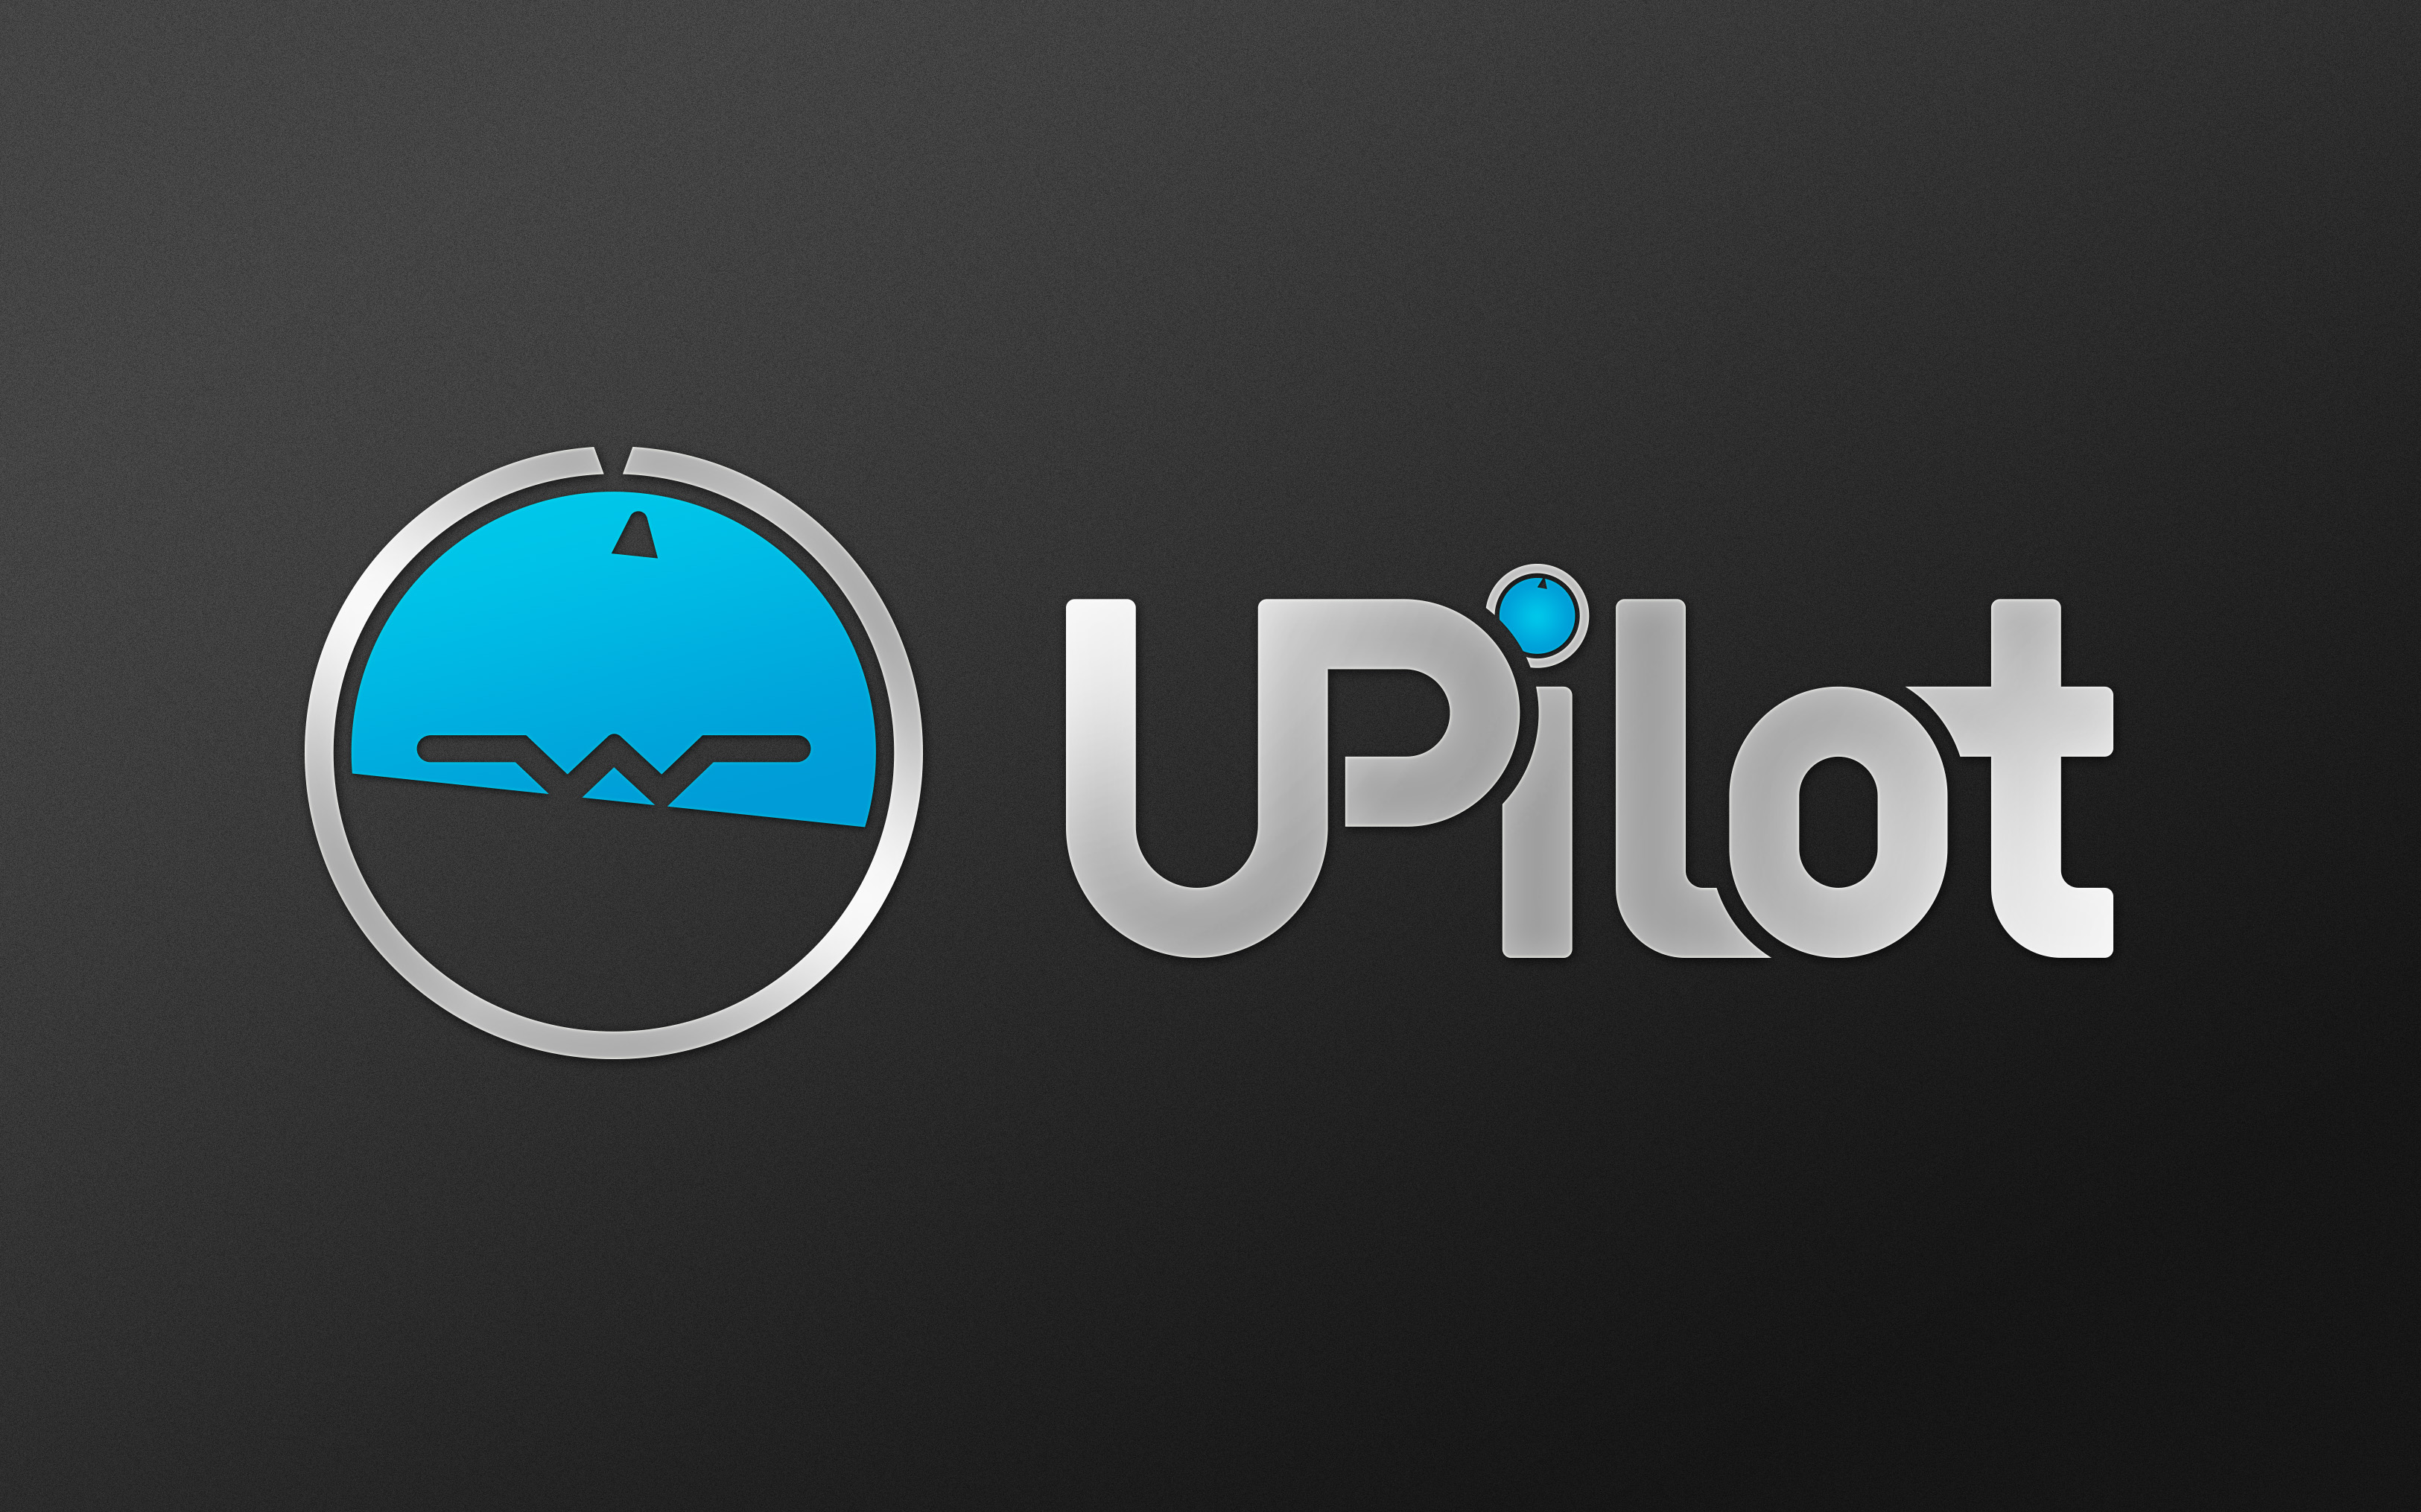 UPilot logo - HD Dark